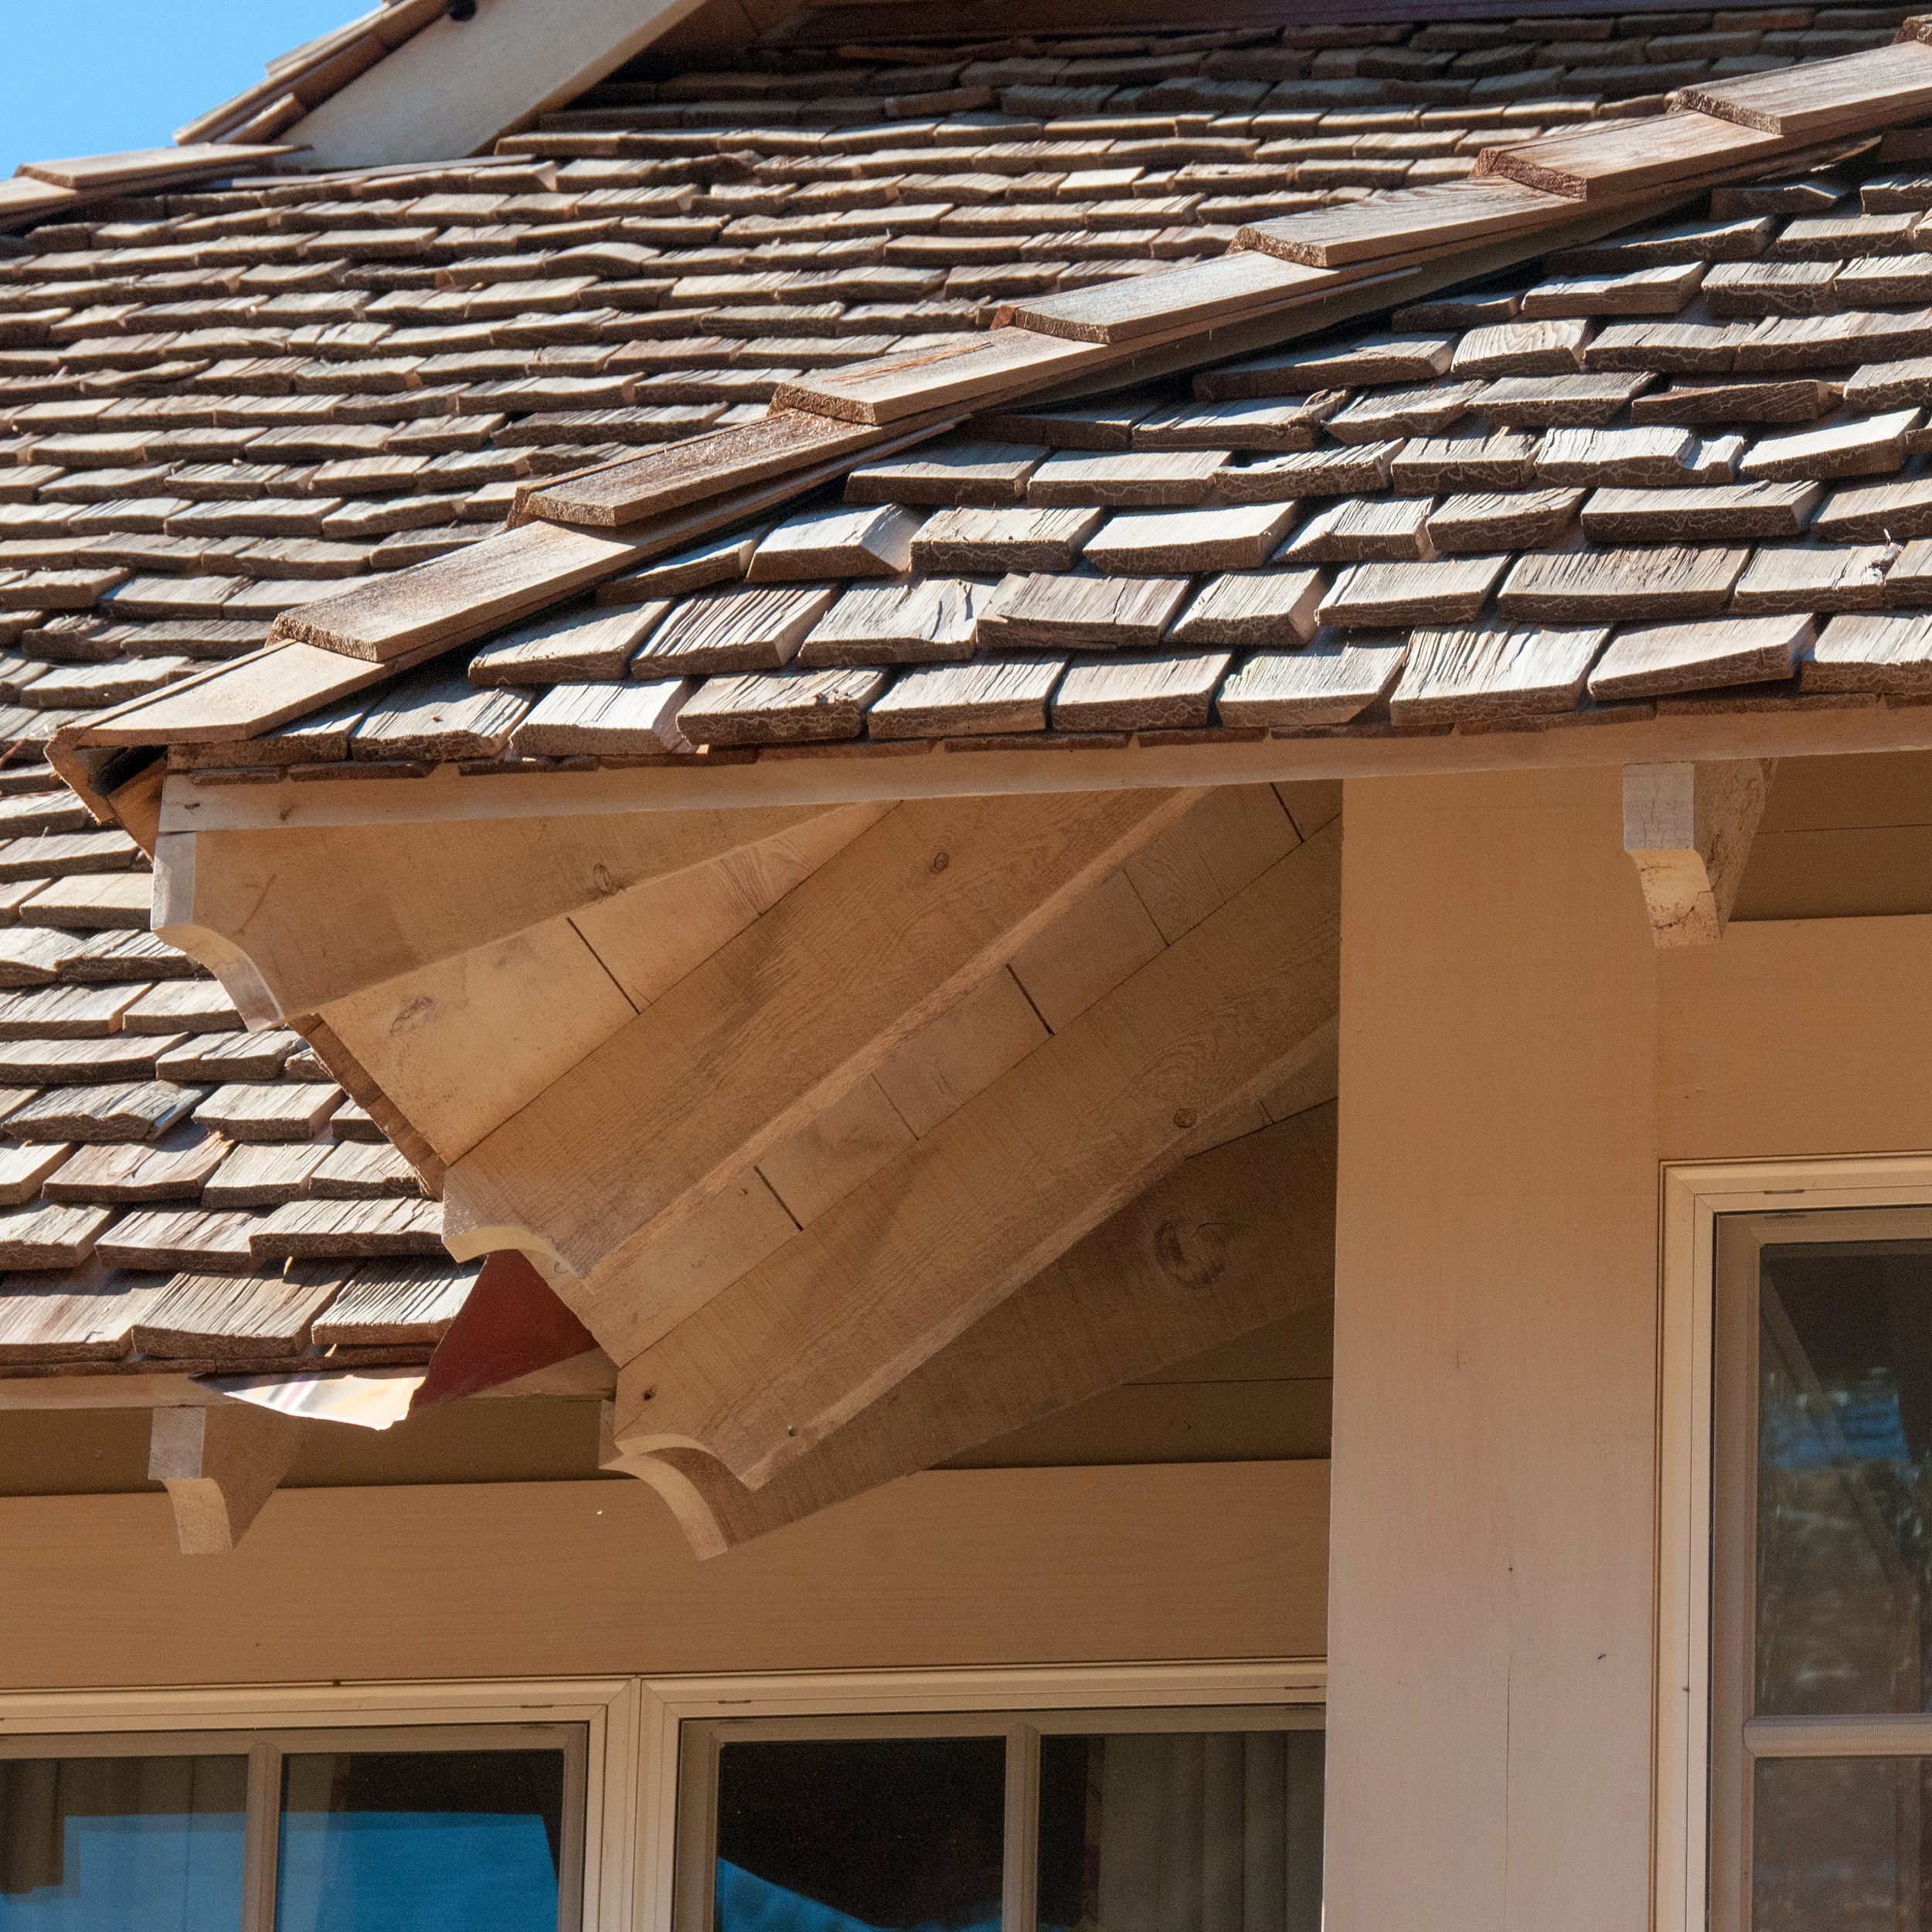 longridge_farm_lakehouse_06_lake_house_hip_roof_eave_cedar_exposed_rafter_tail_1500.jpg